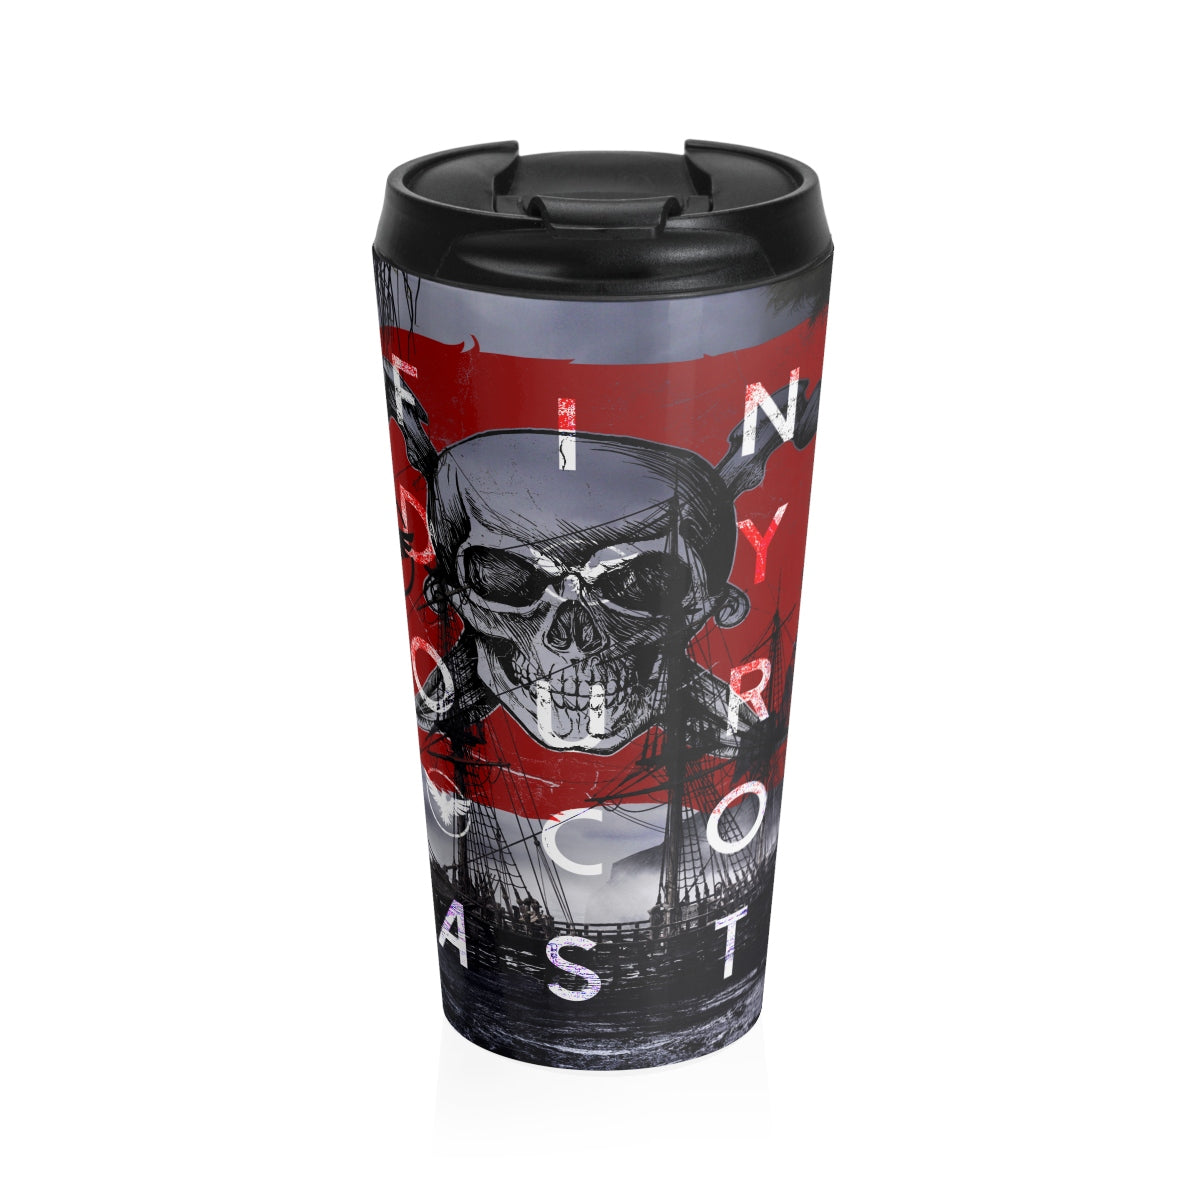 Jolly Roger Stainless Steel Travel Mug - Find Your Coast Supply Co.